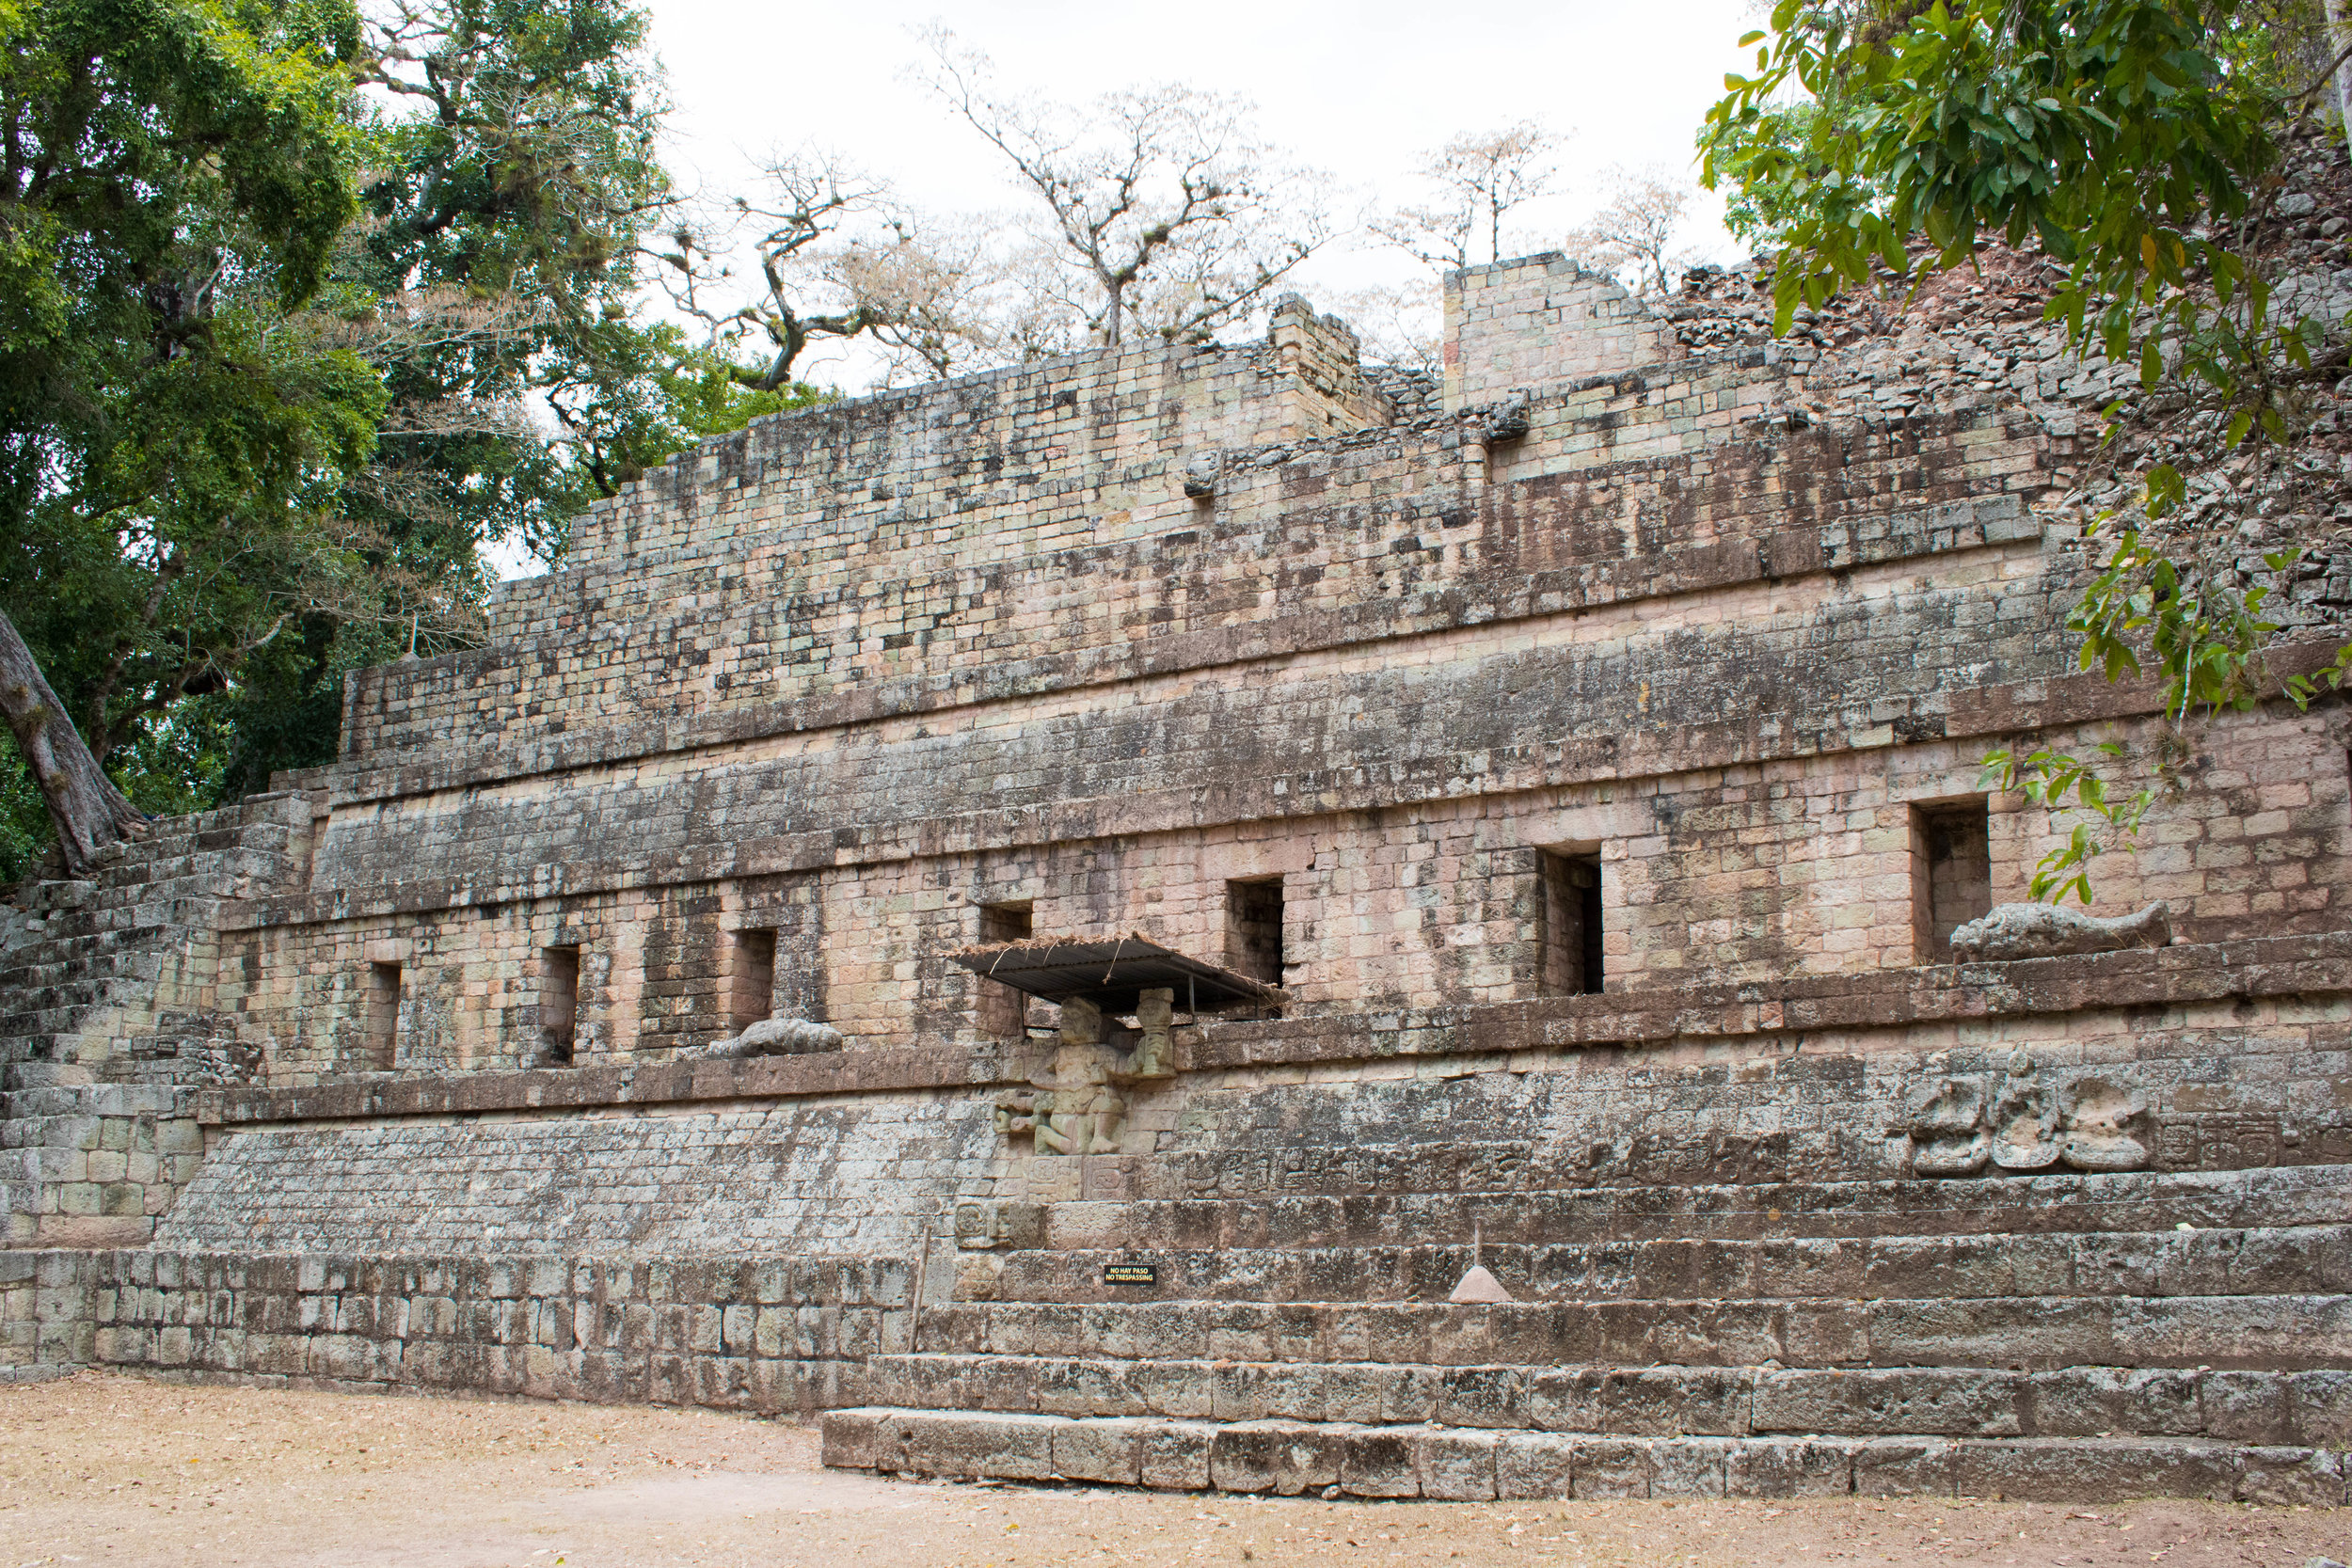 Perfectly Preserved Temples in Copán, Honduras